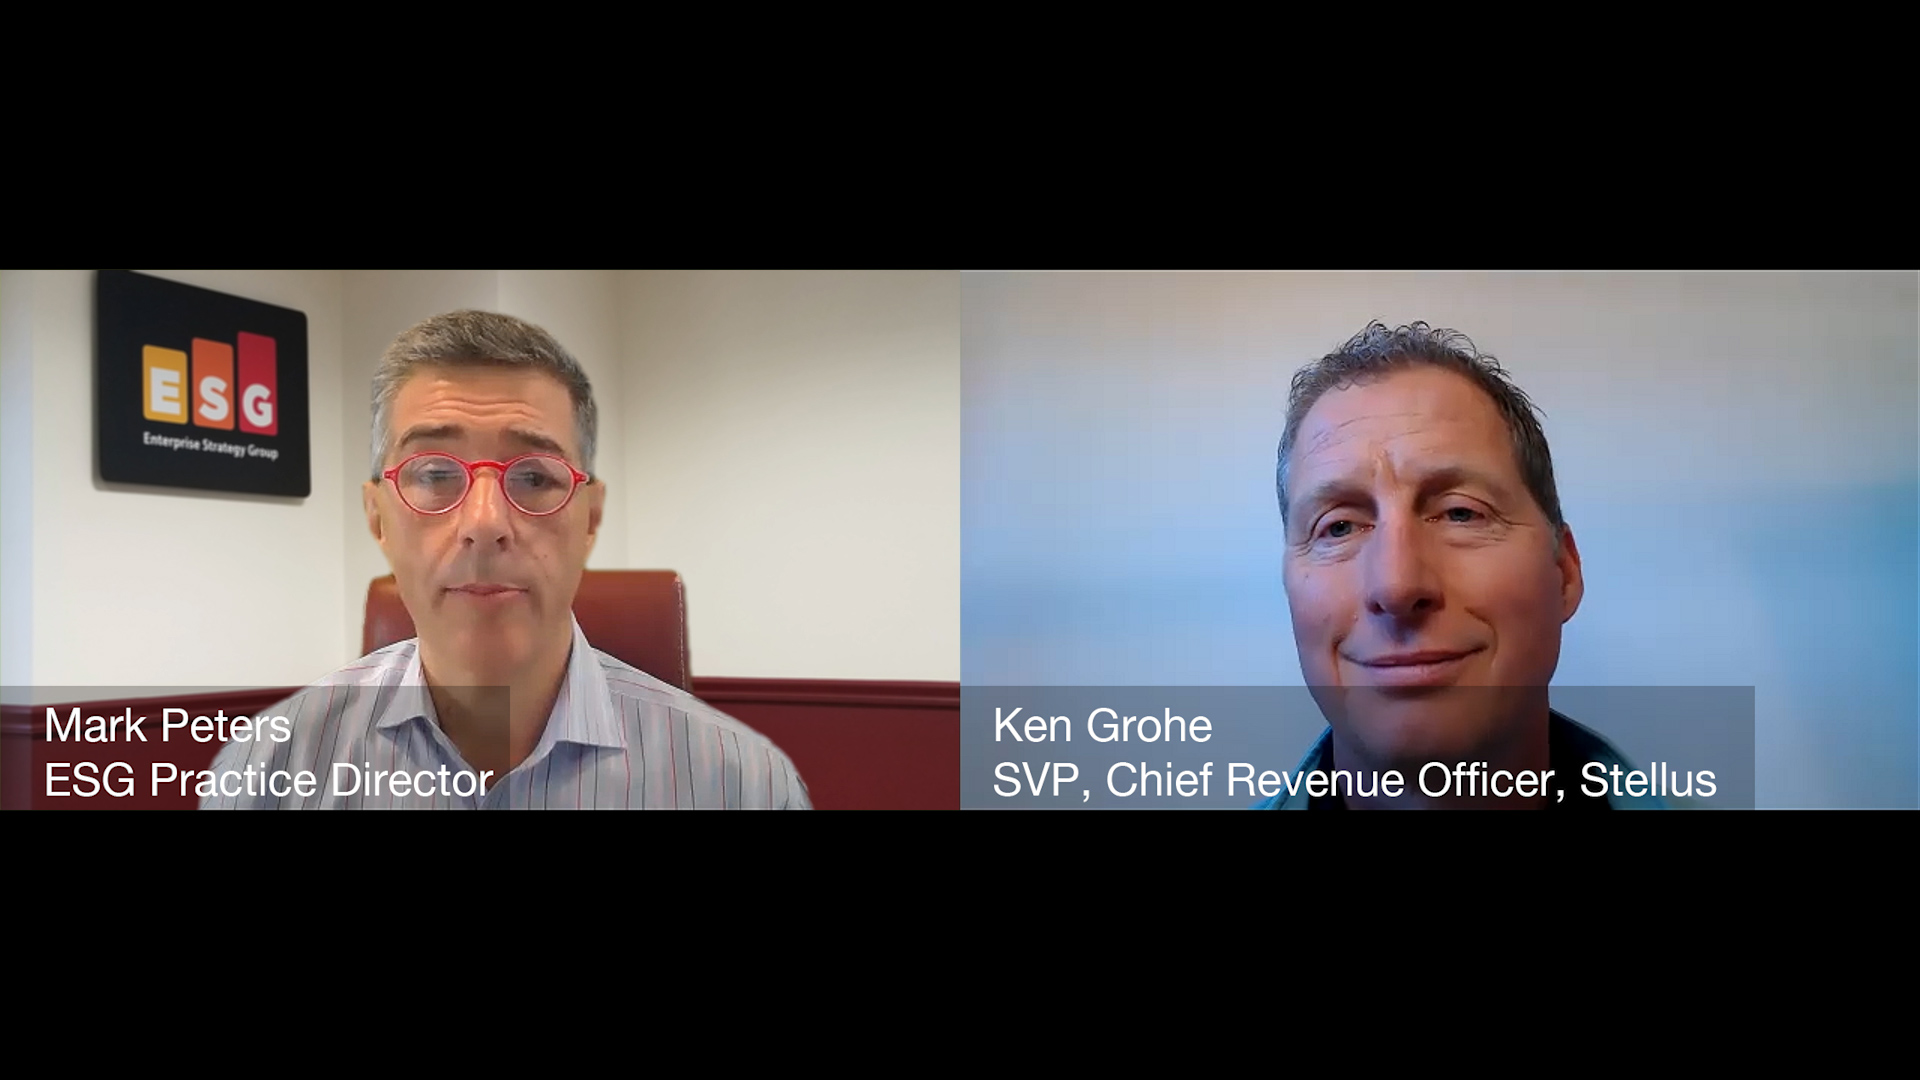 Marketing in Challenging Times - in Conversation with Ken Grohe of Stellus (Video)